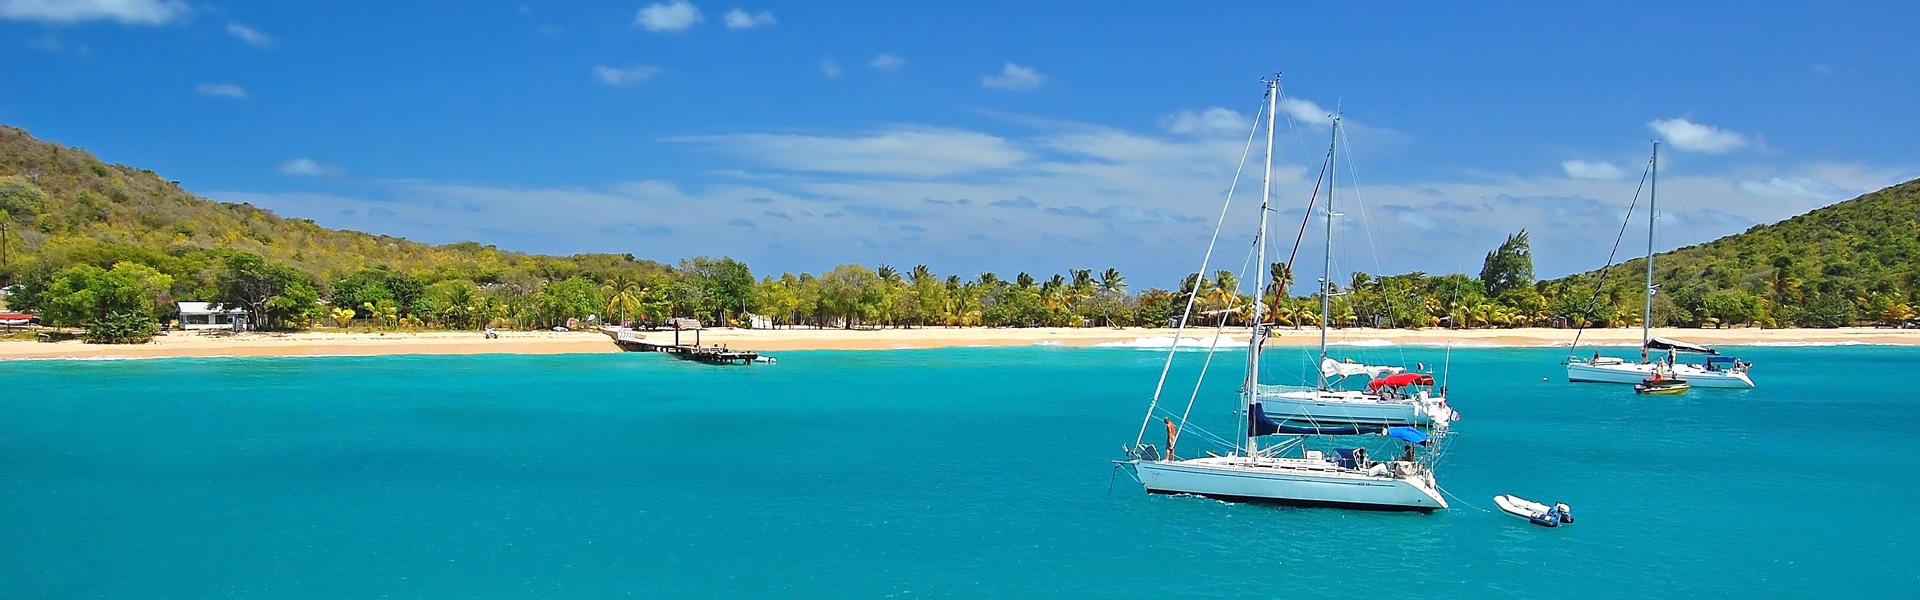 sandy sailboats bvi